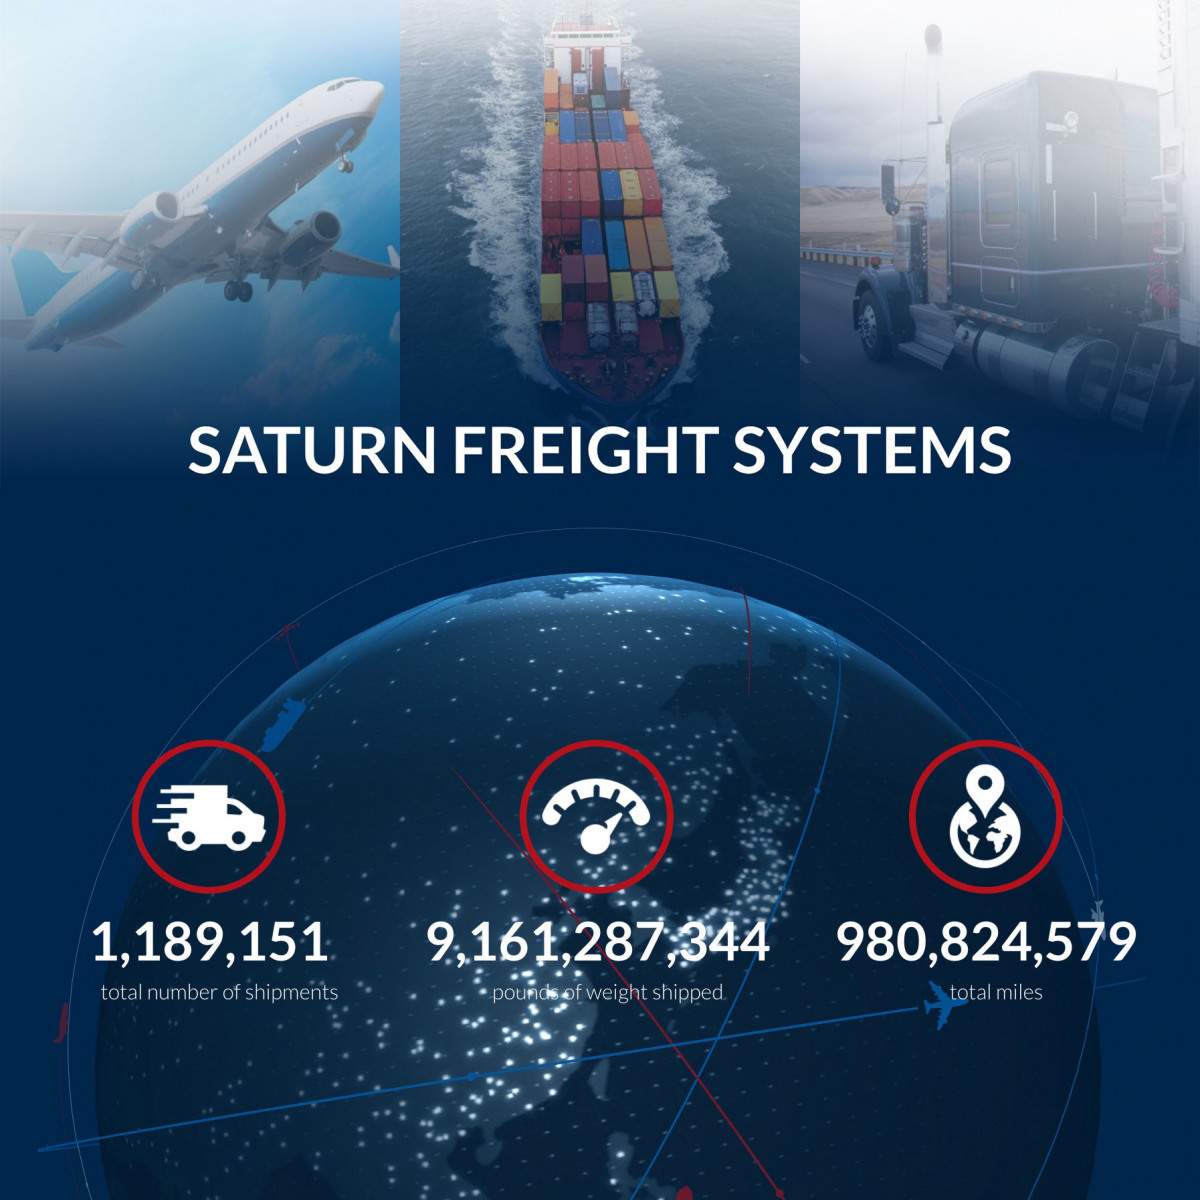 Image of website for Saturn Freight Systems